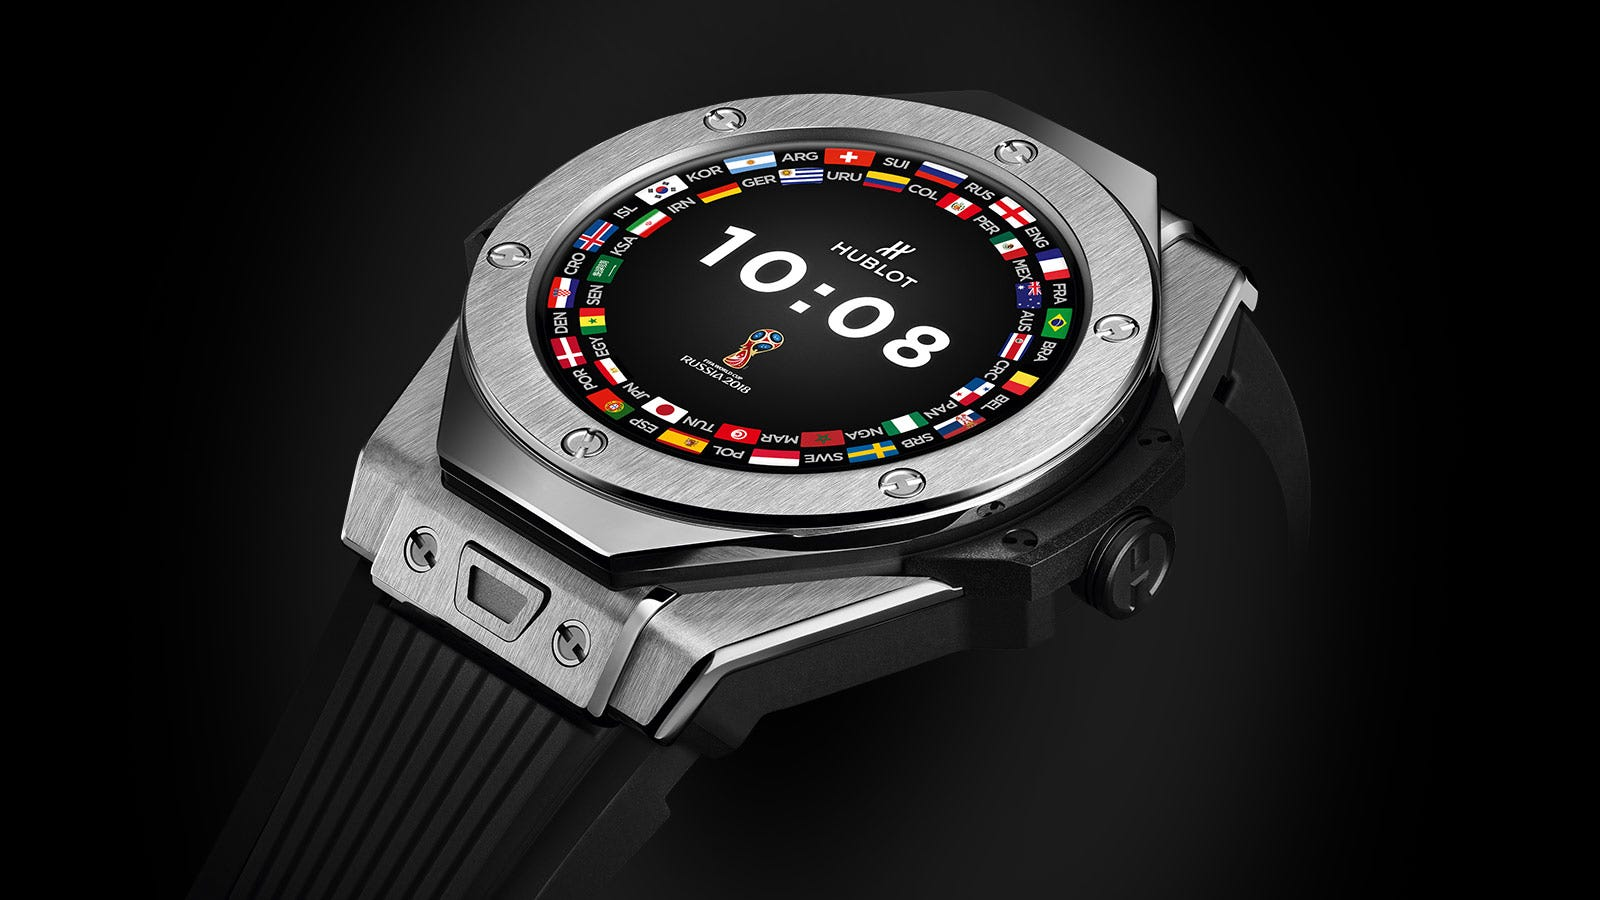 I'll Get Excited About Hublot's New Smartwatch When Jay Z